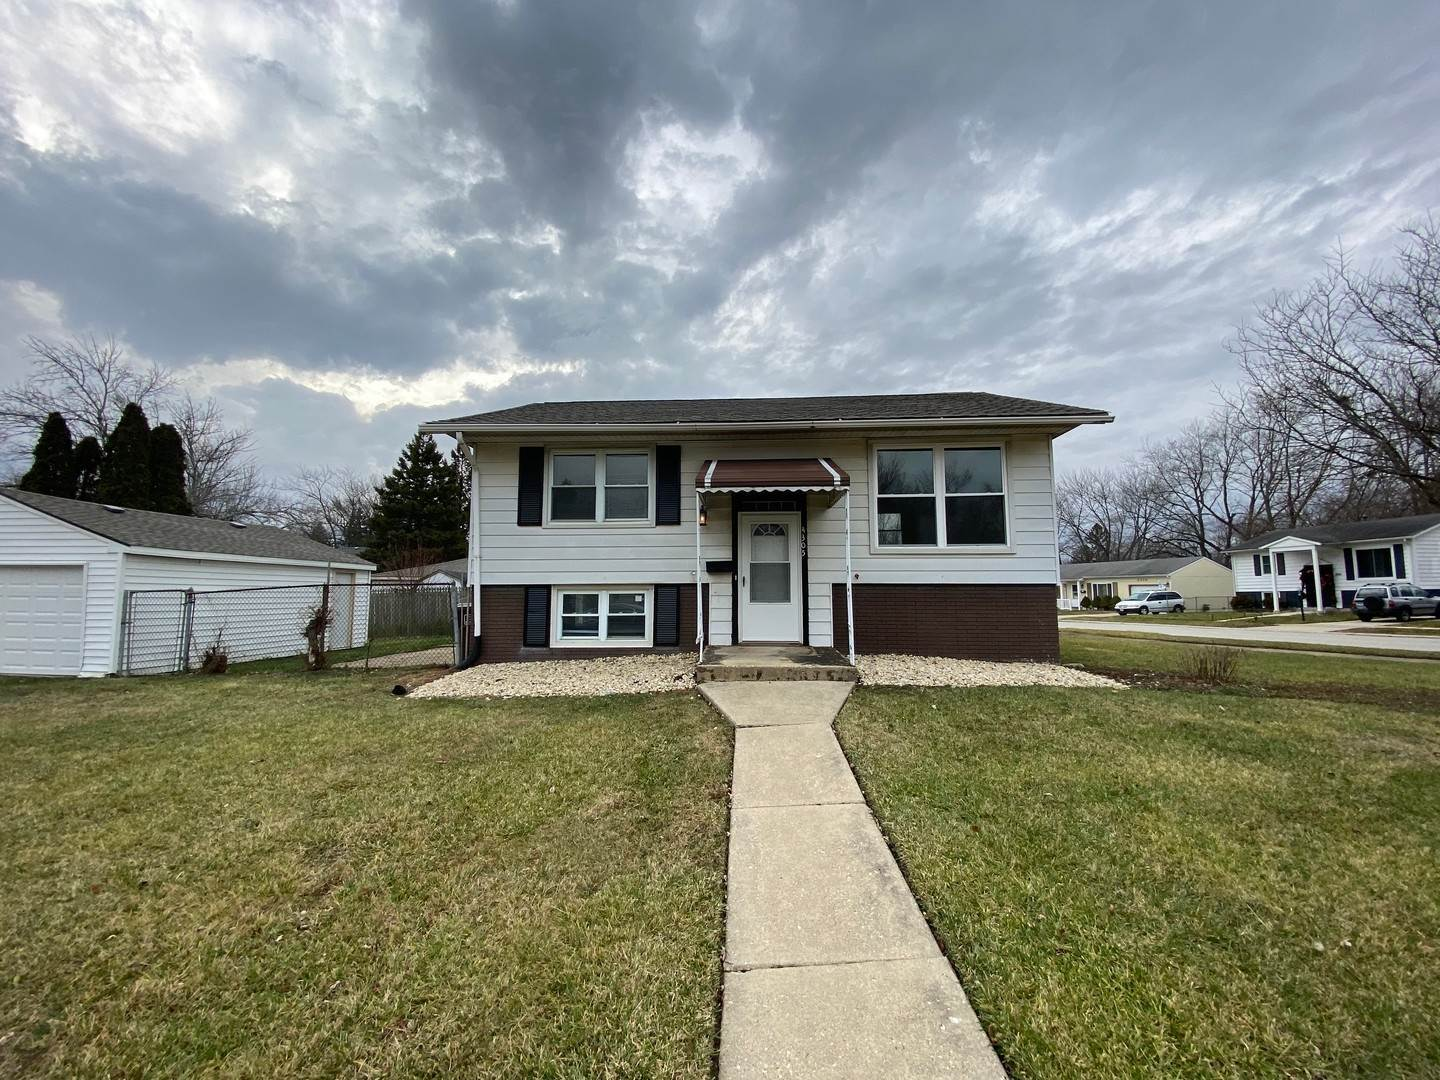 Single Family Homes for Sale at 4305 Clark Drive Richton Park, Illinois 60471 United States